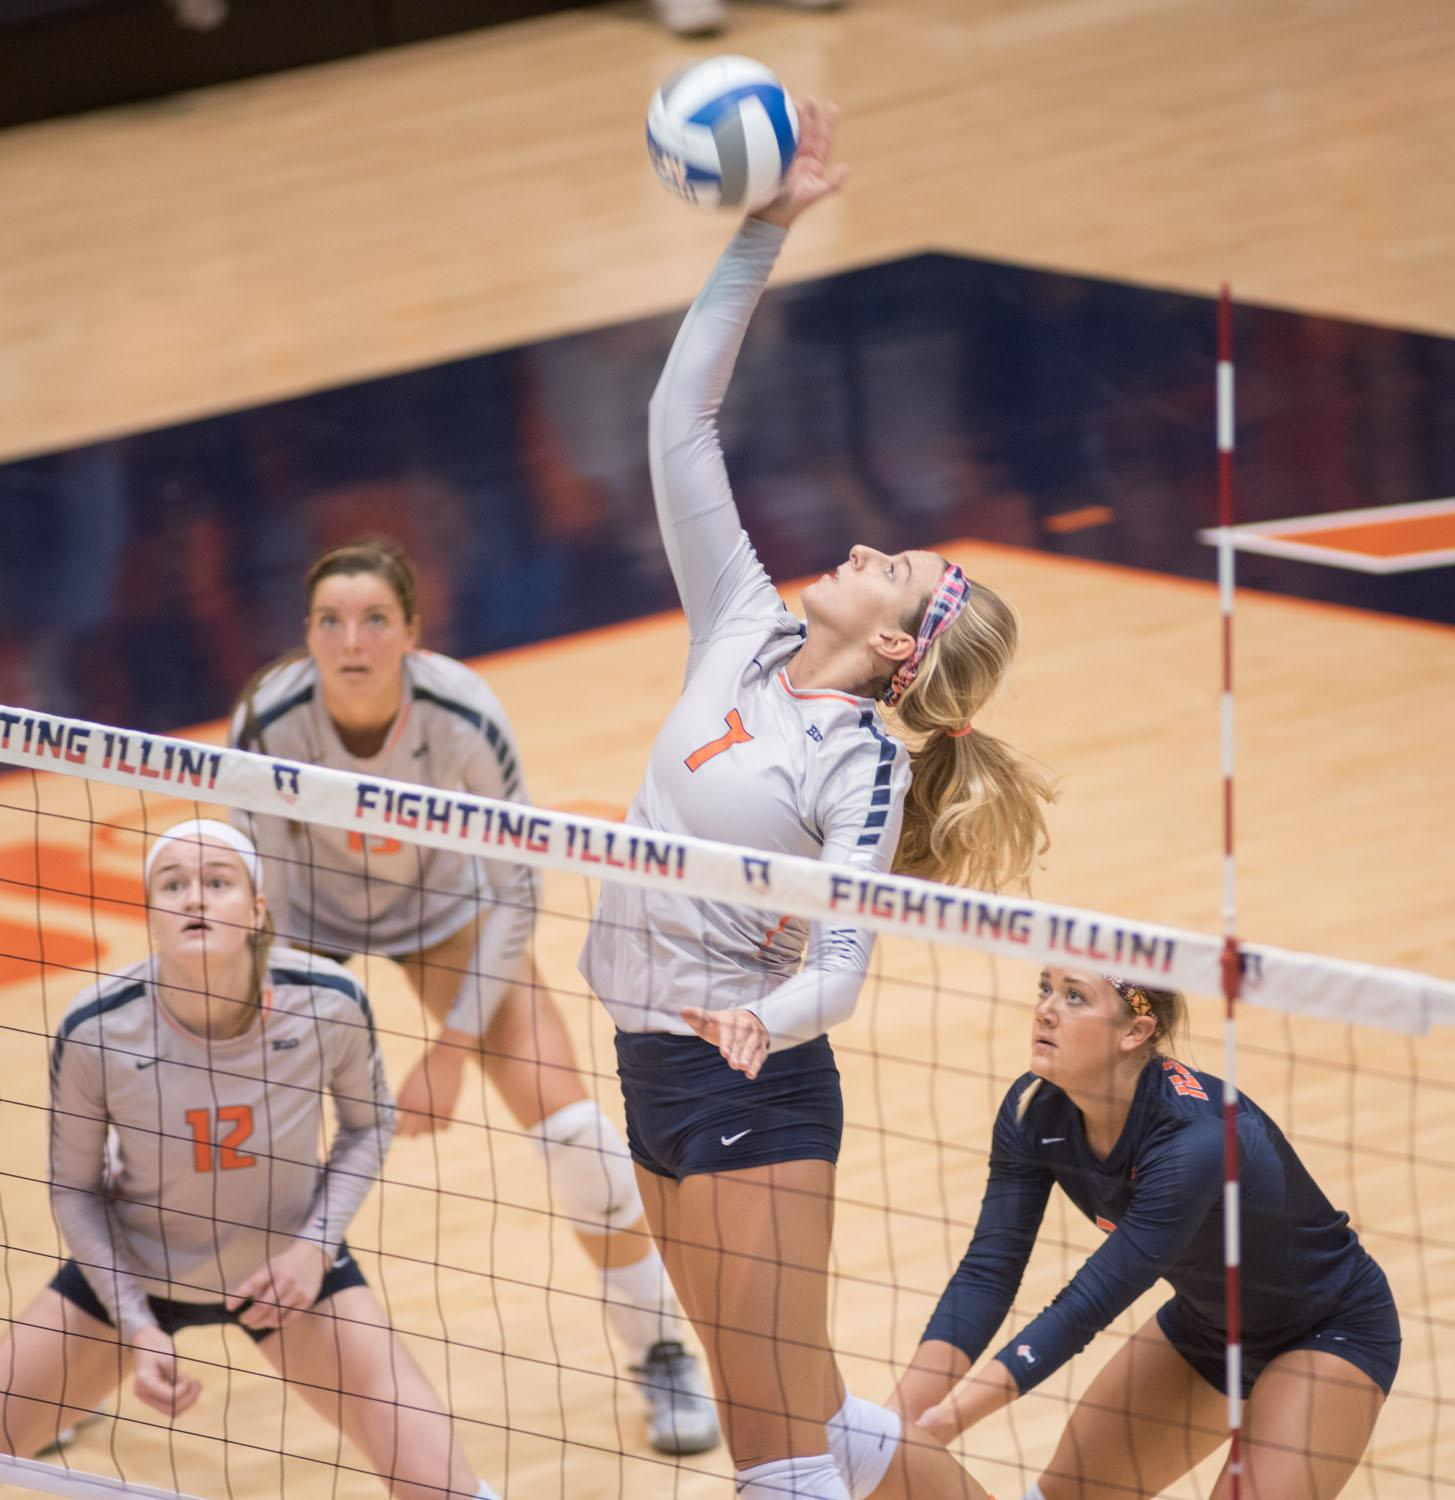 Jocelynn Birks spikes the ball during the game against Penn State at Huff Hall on Friday, October 9. Illinois lost 1-3.